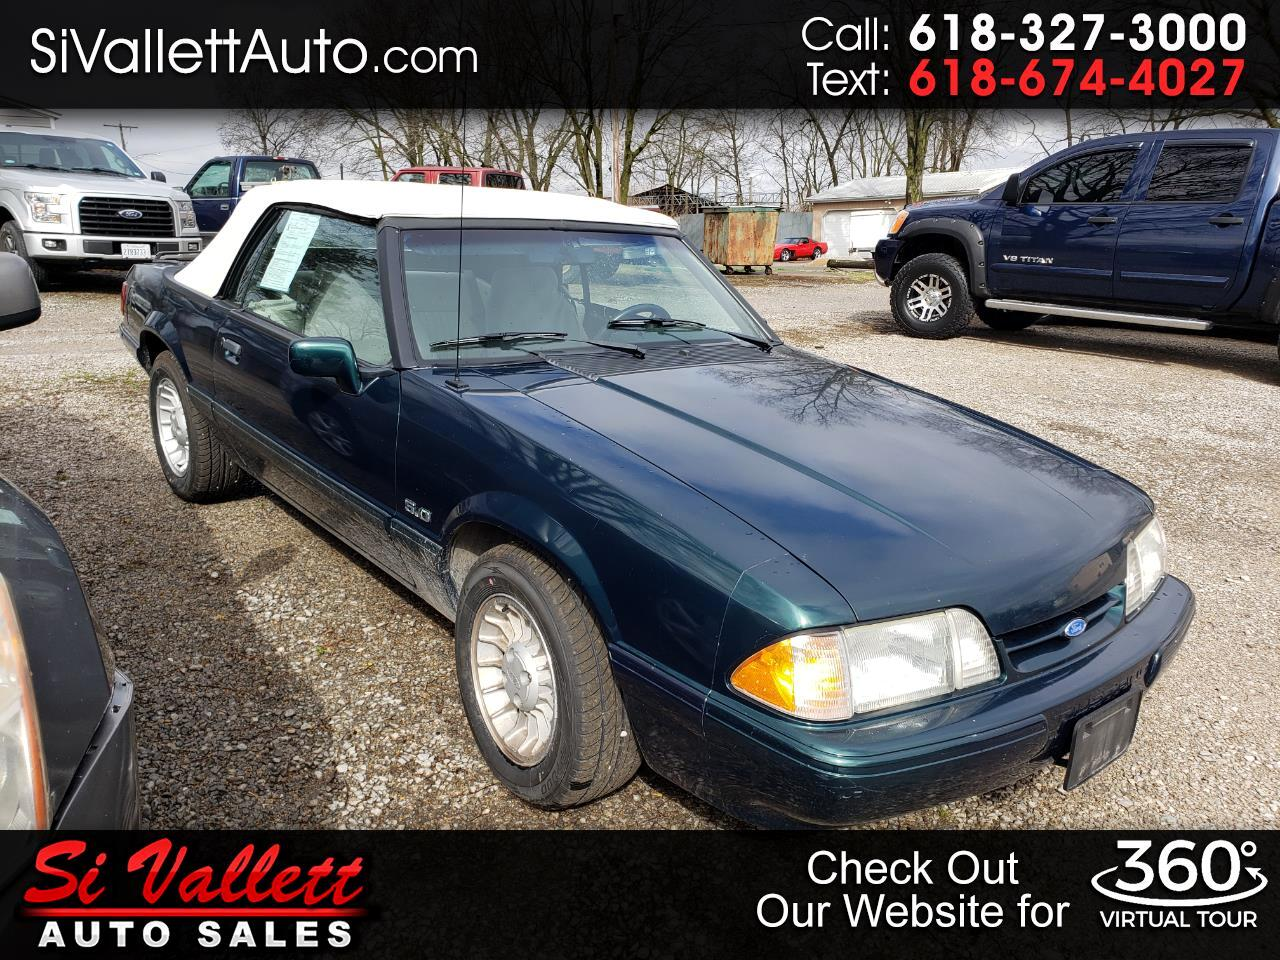 Ford Mustang 2dr Convertible LX Sport 5.0L 1990